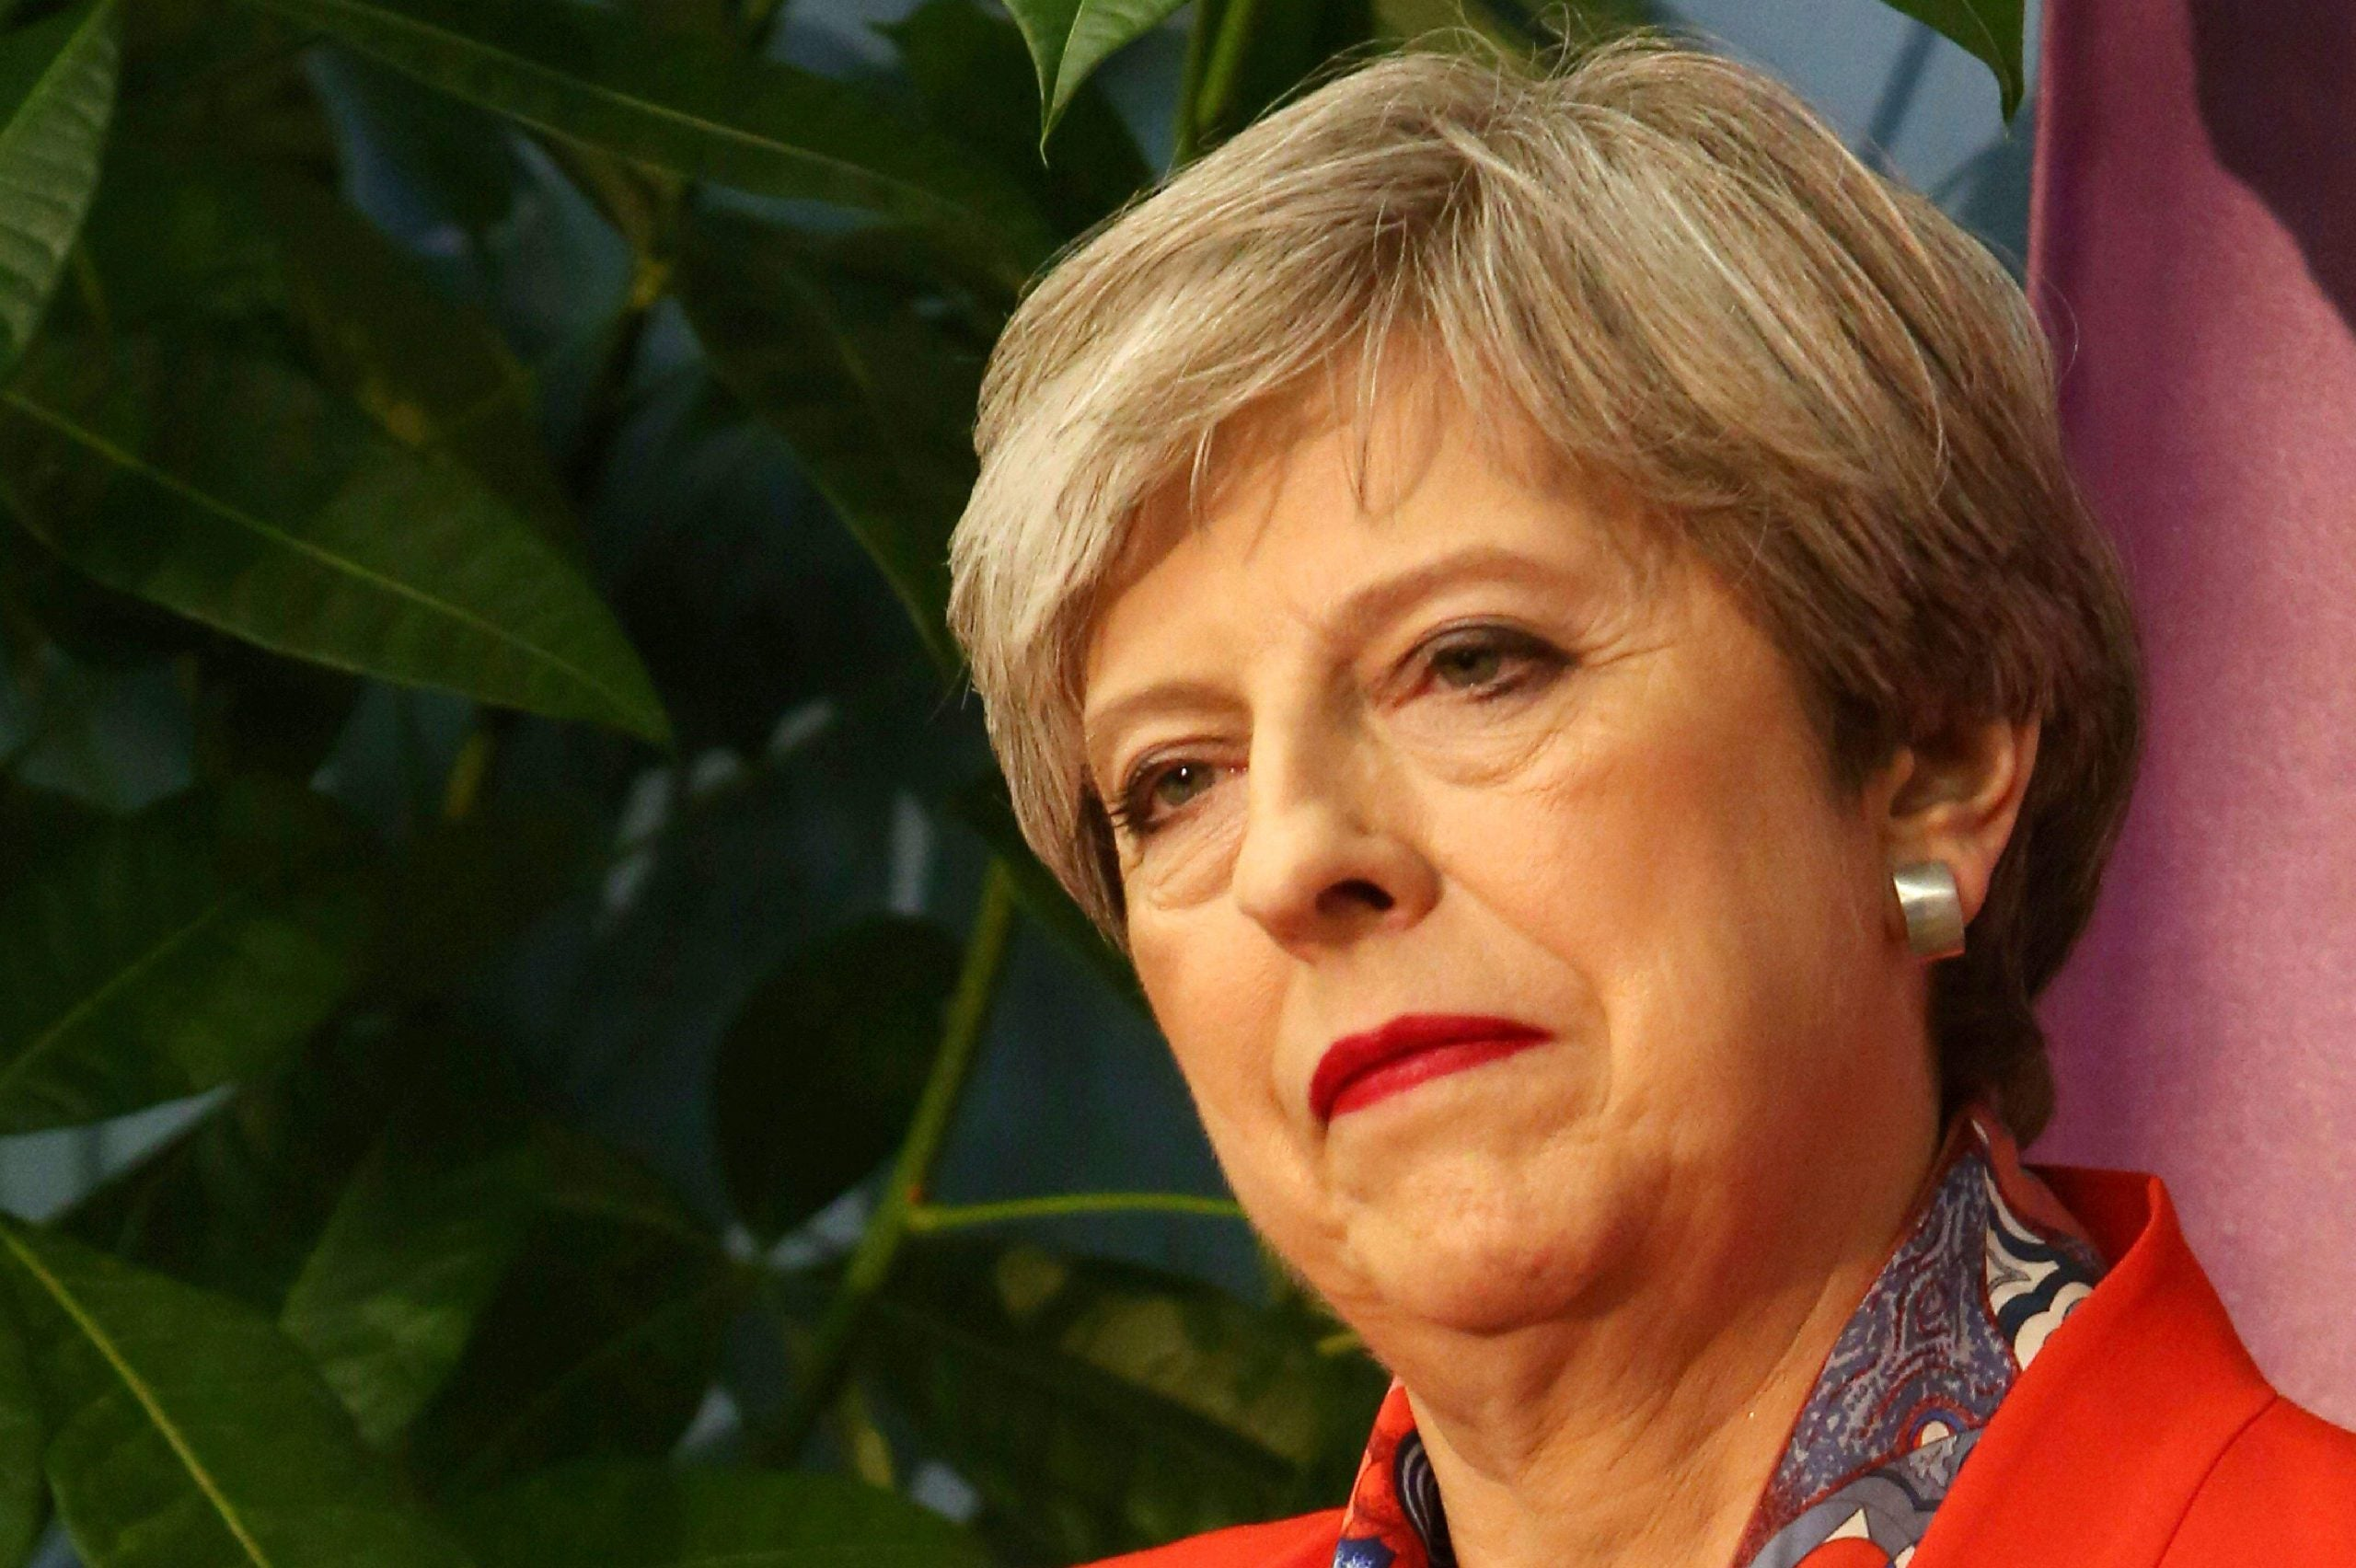 2017: The year Theresa May's opponents took back control